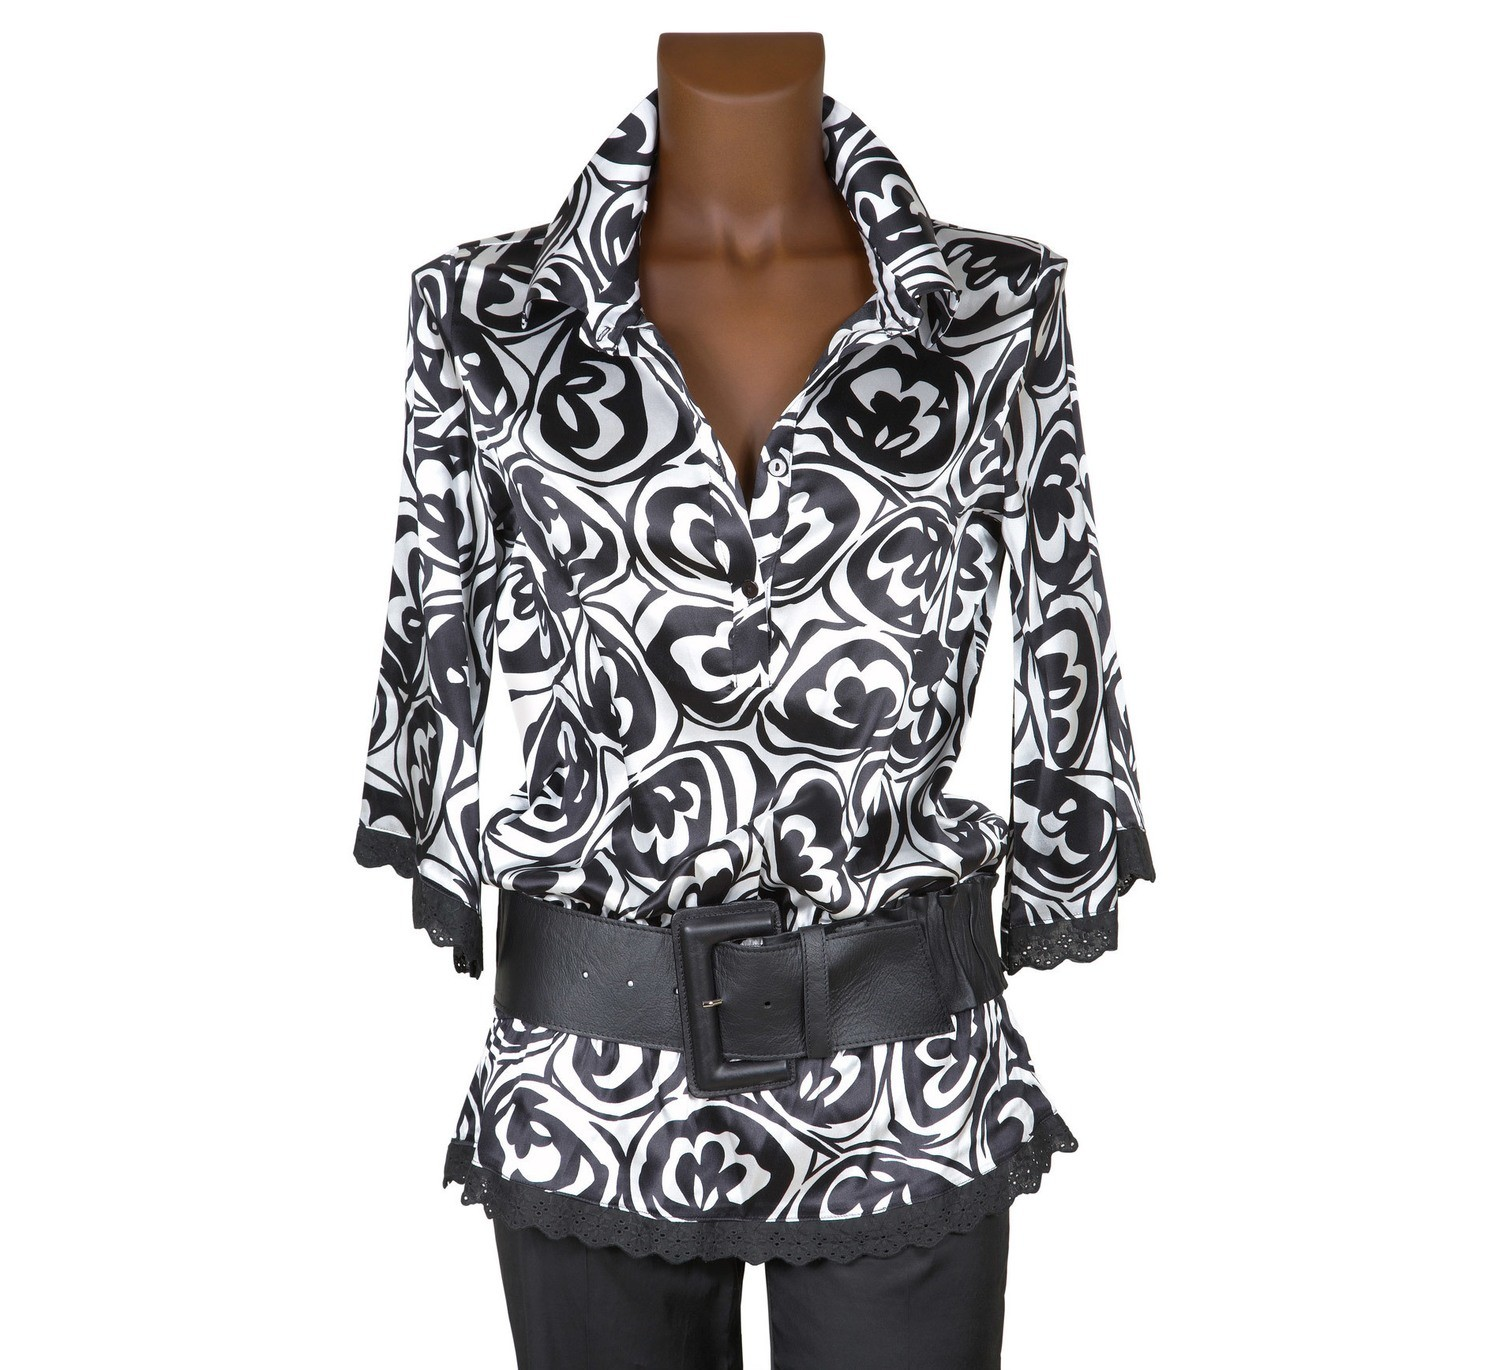 Women's Jacket & Belt